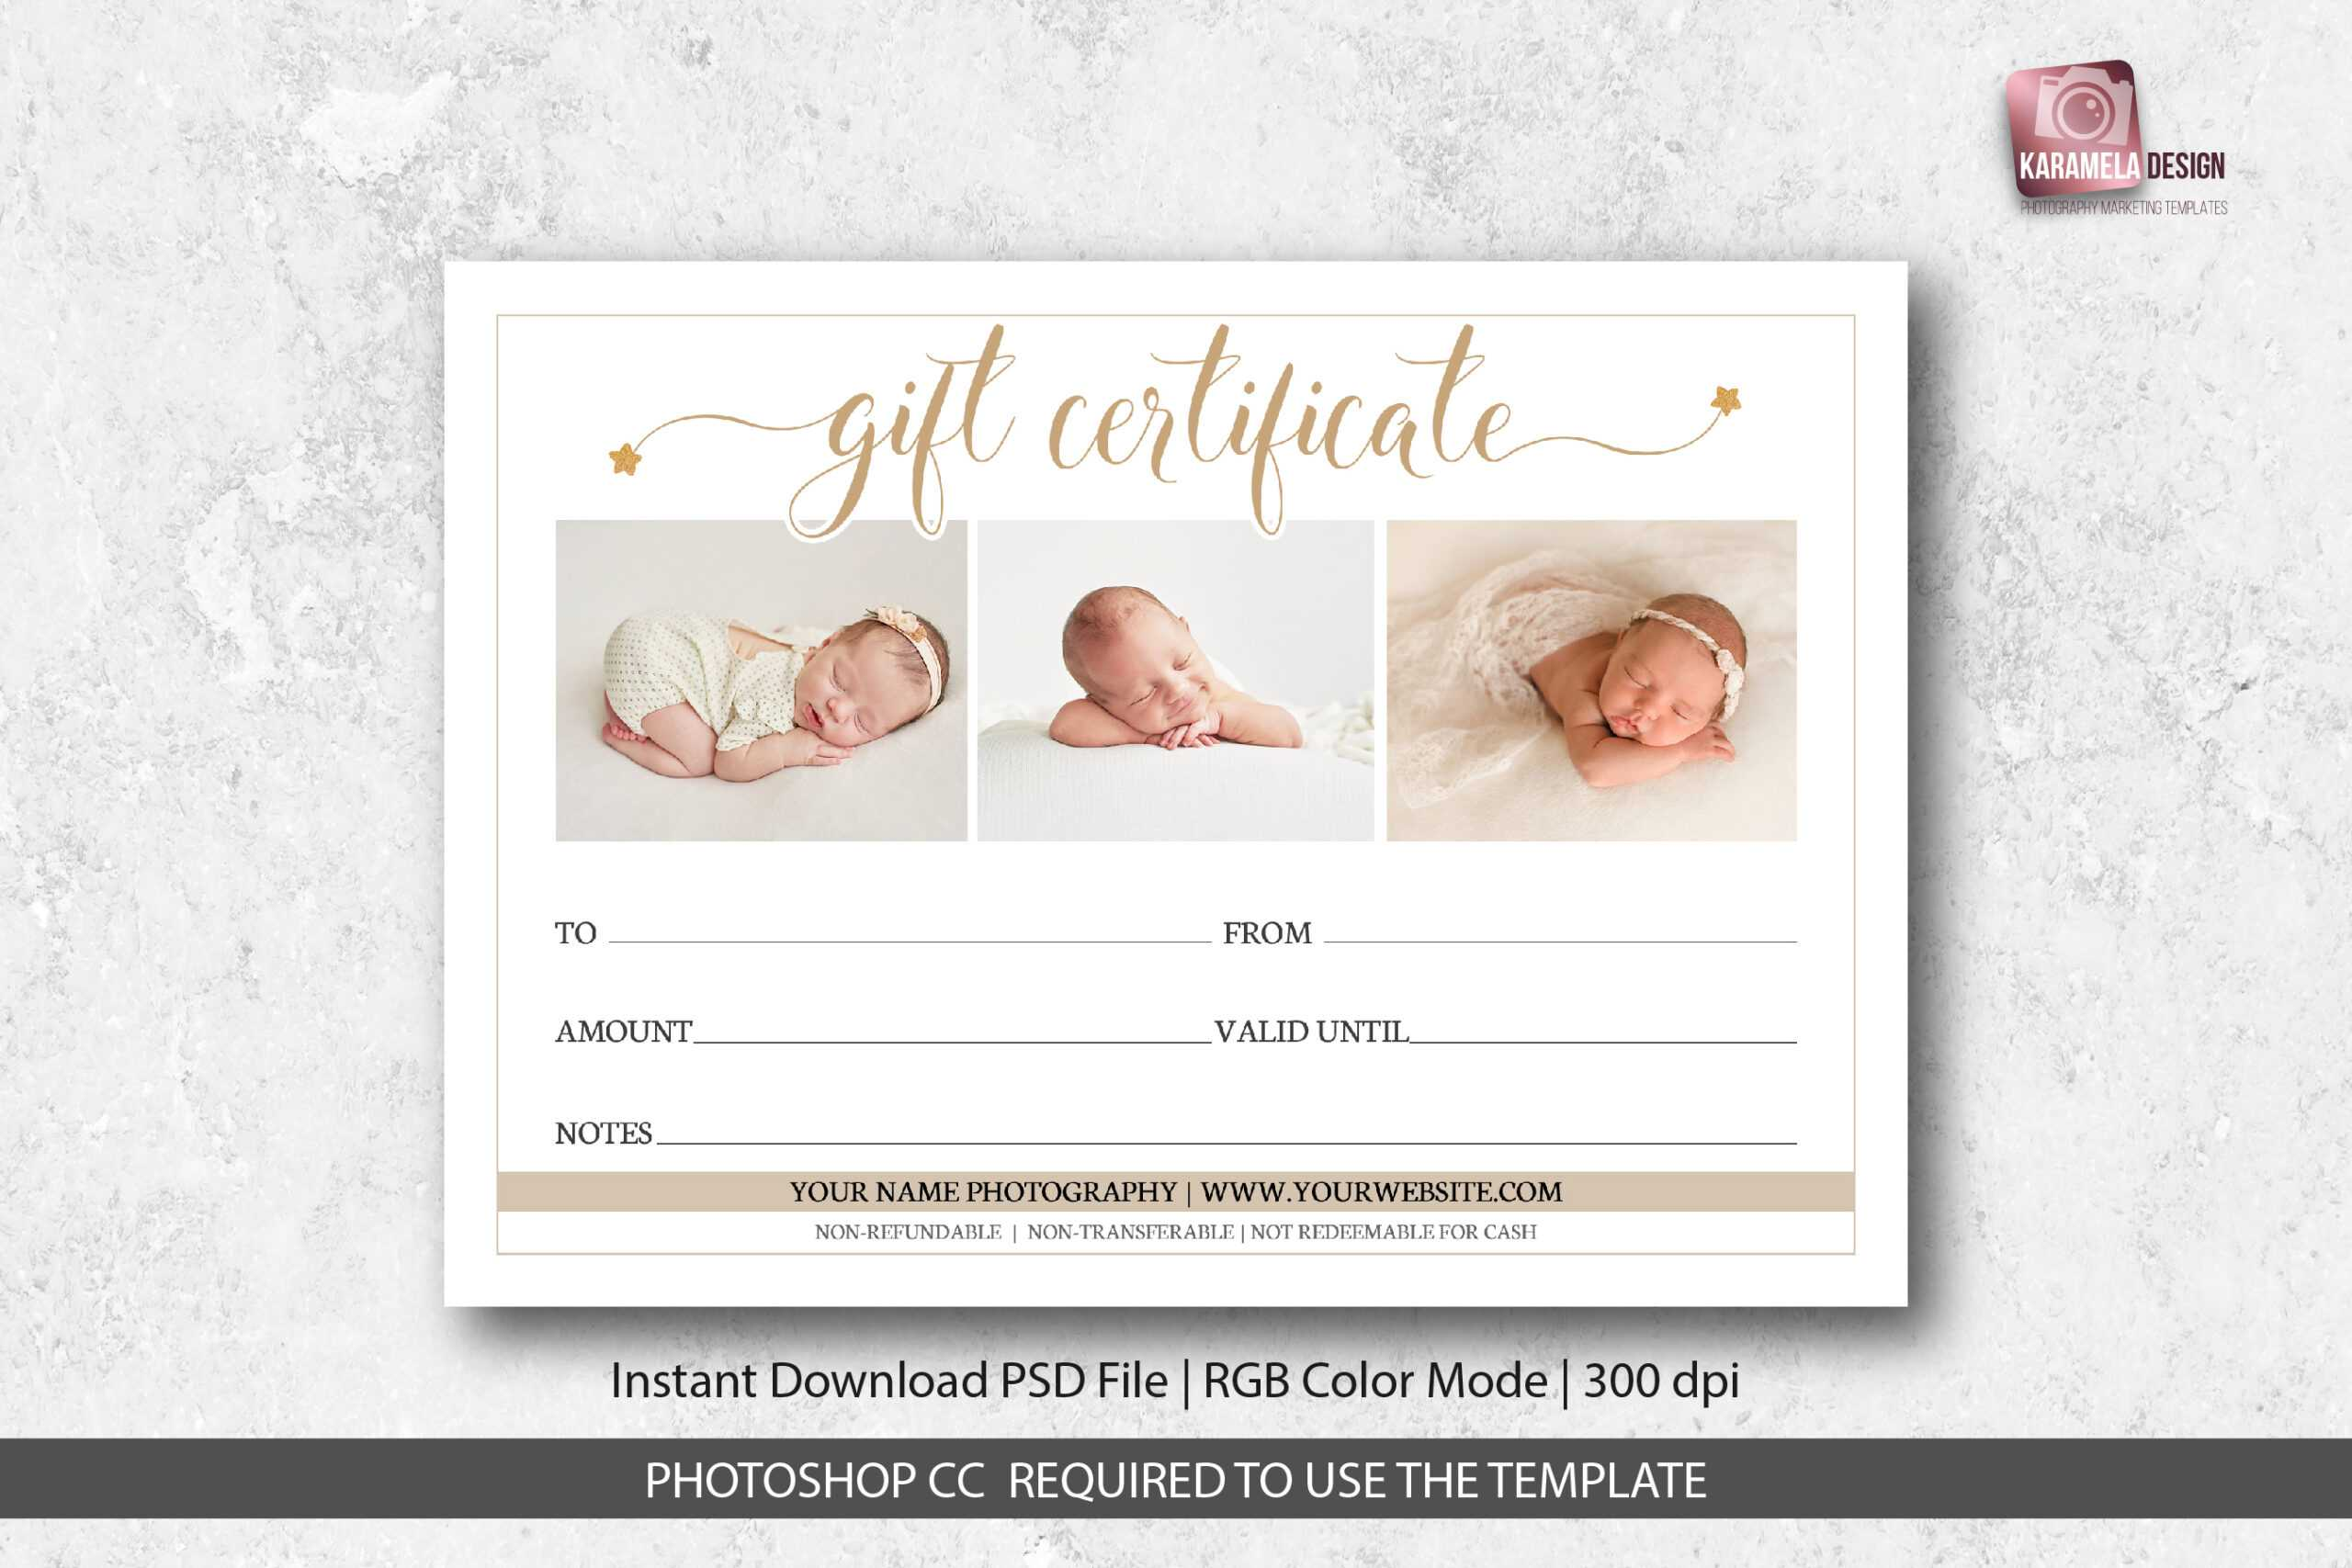 Photography Studio Gift Certificate Template For Gift Certificate Template Photoshop